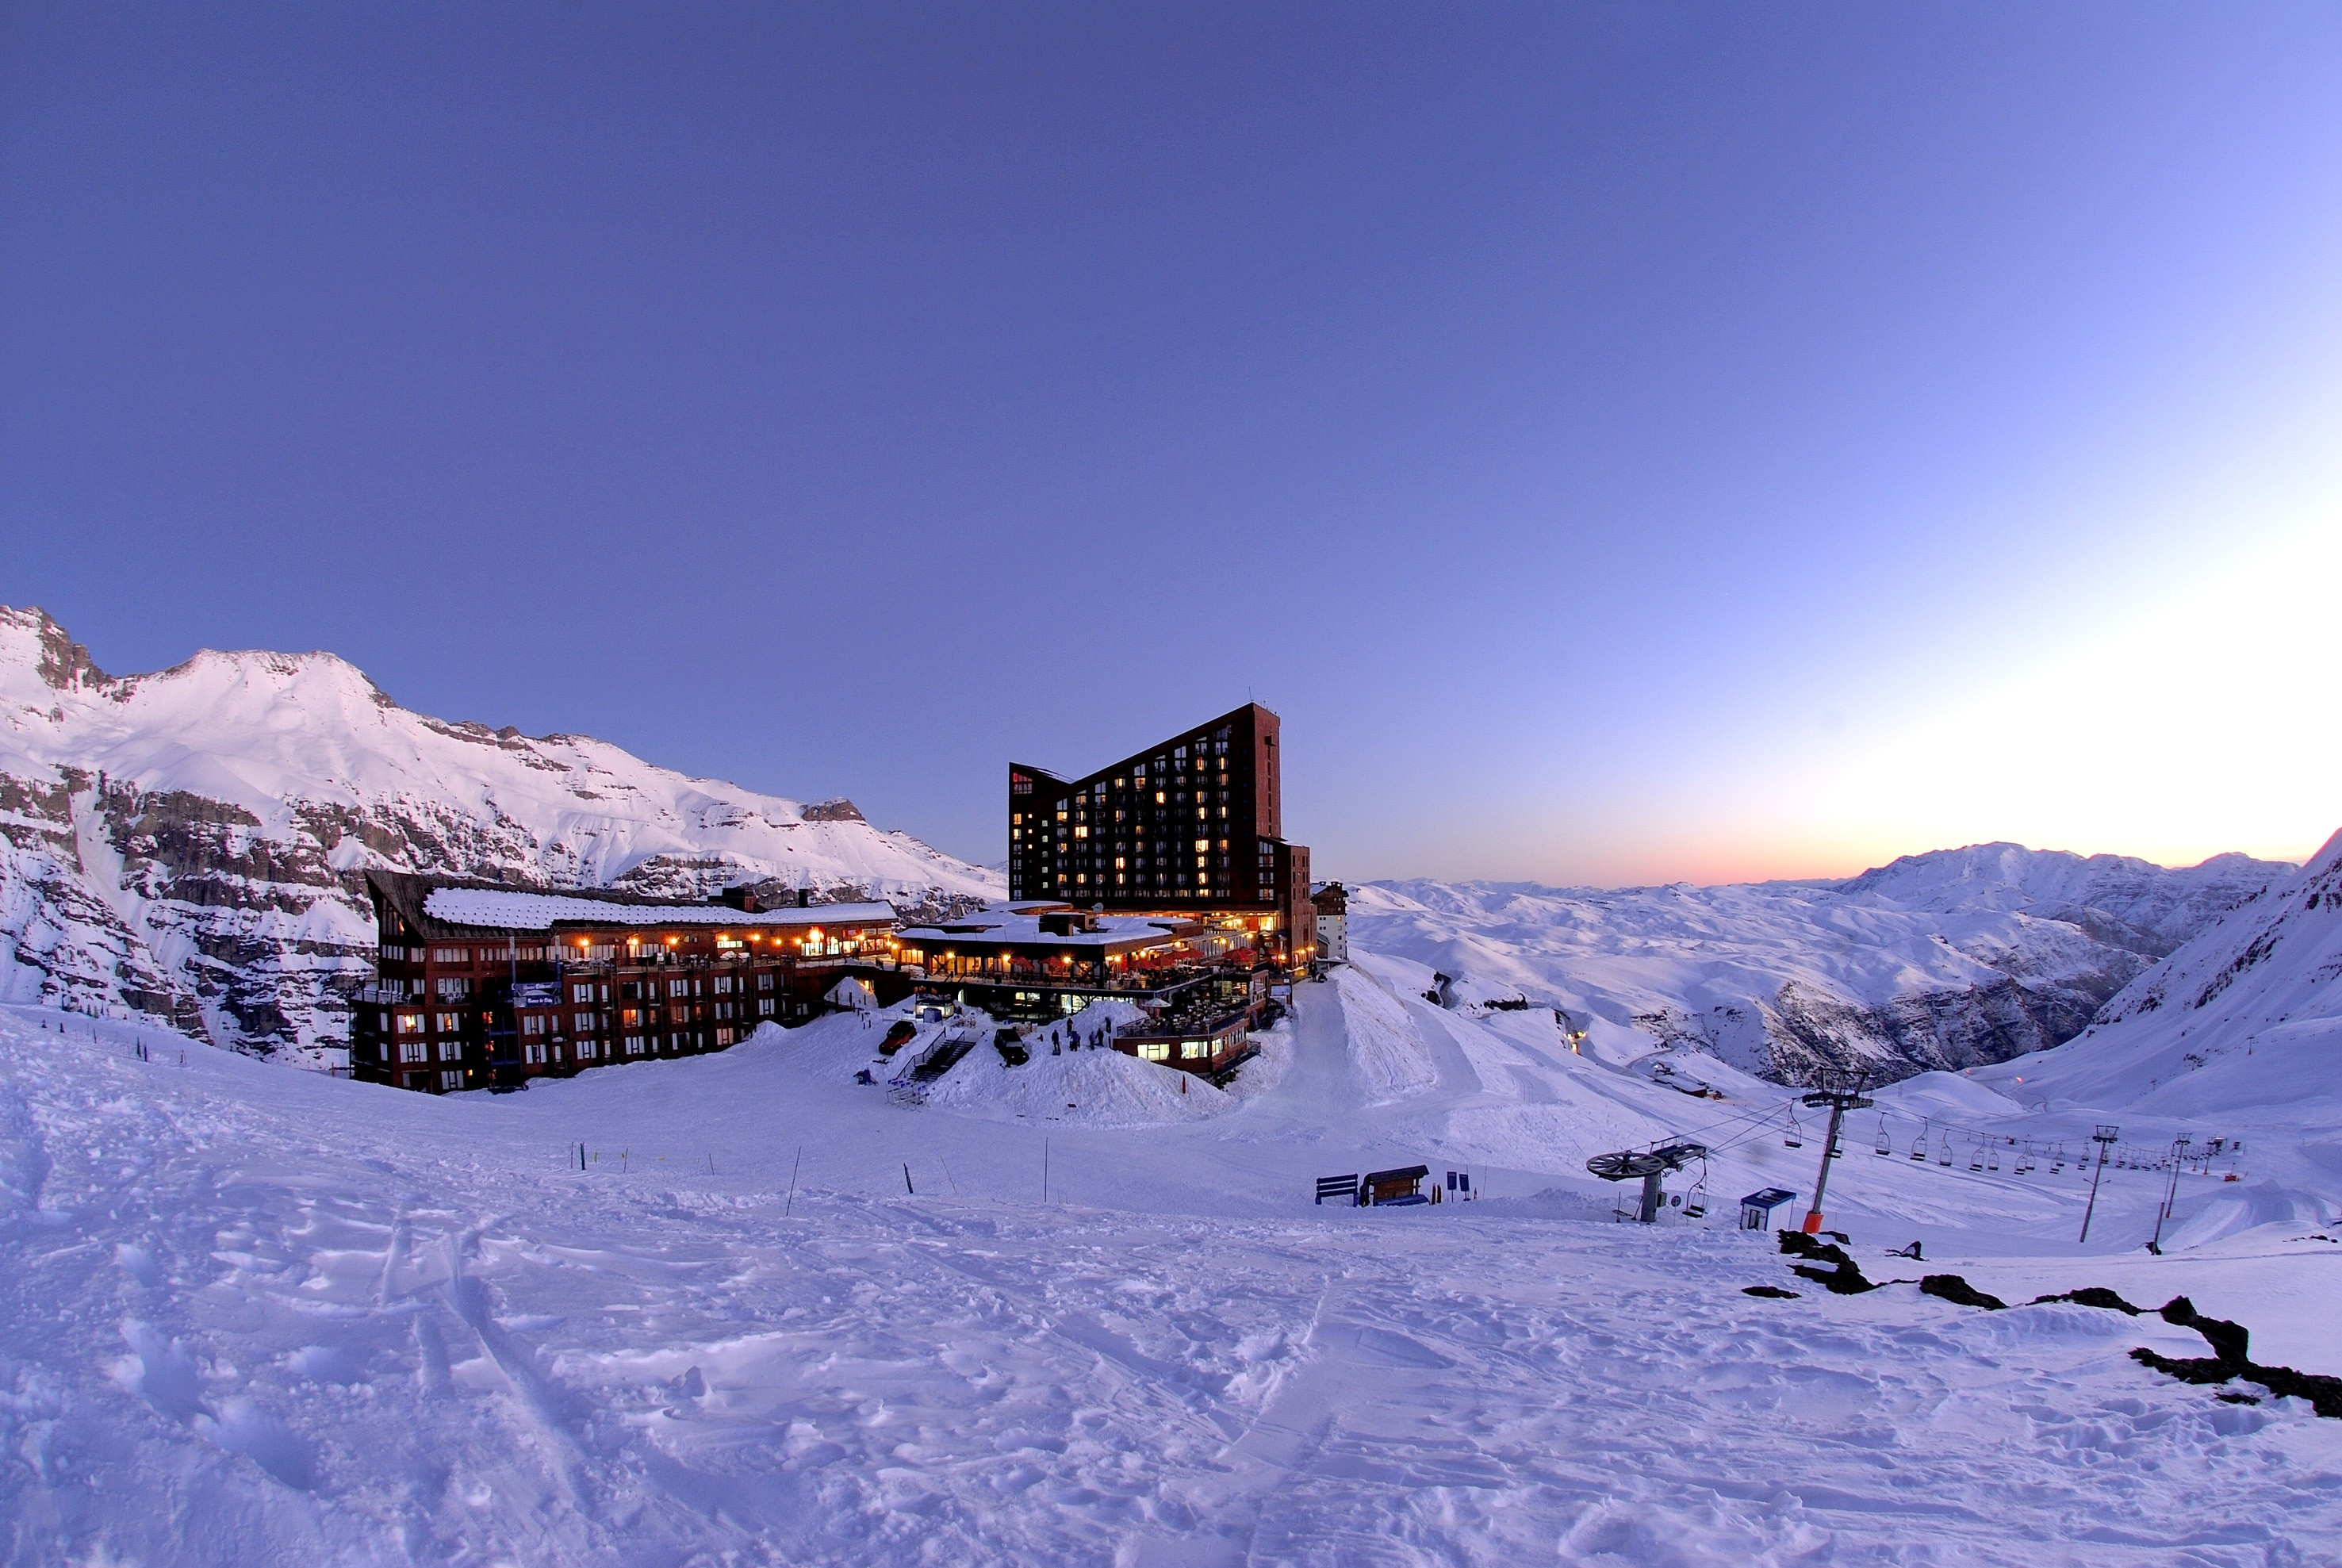 Valle Nevado Resort  CHI scenic